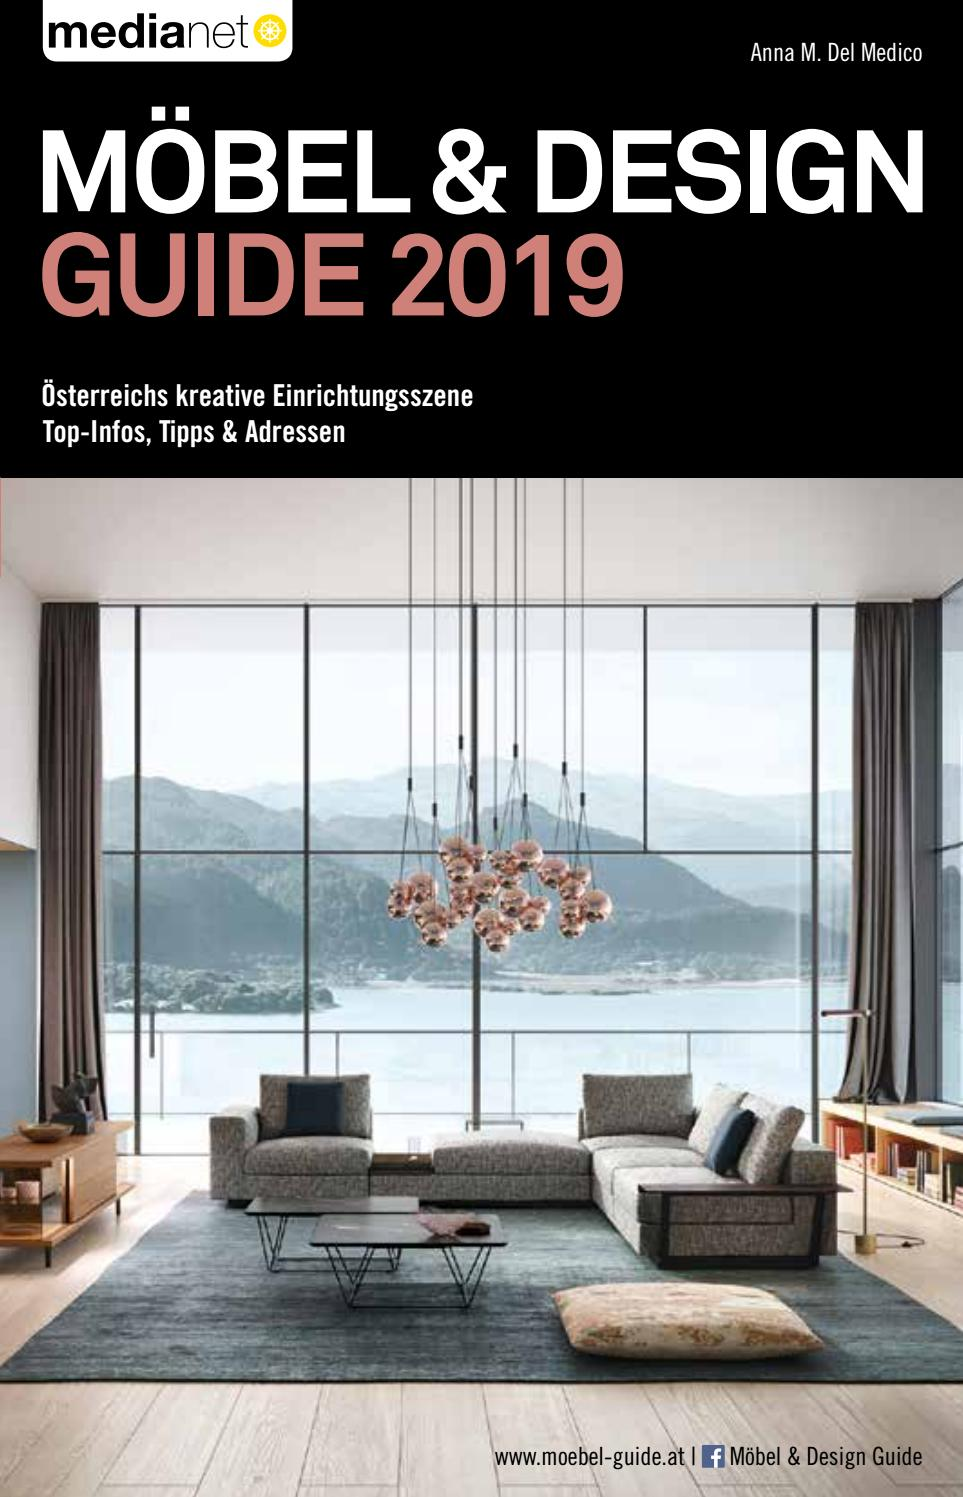 Designmöbel Köln Möbel & Design Guide 2019 By Medianet - Issuu